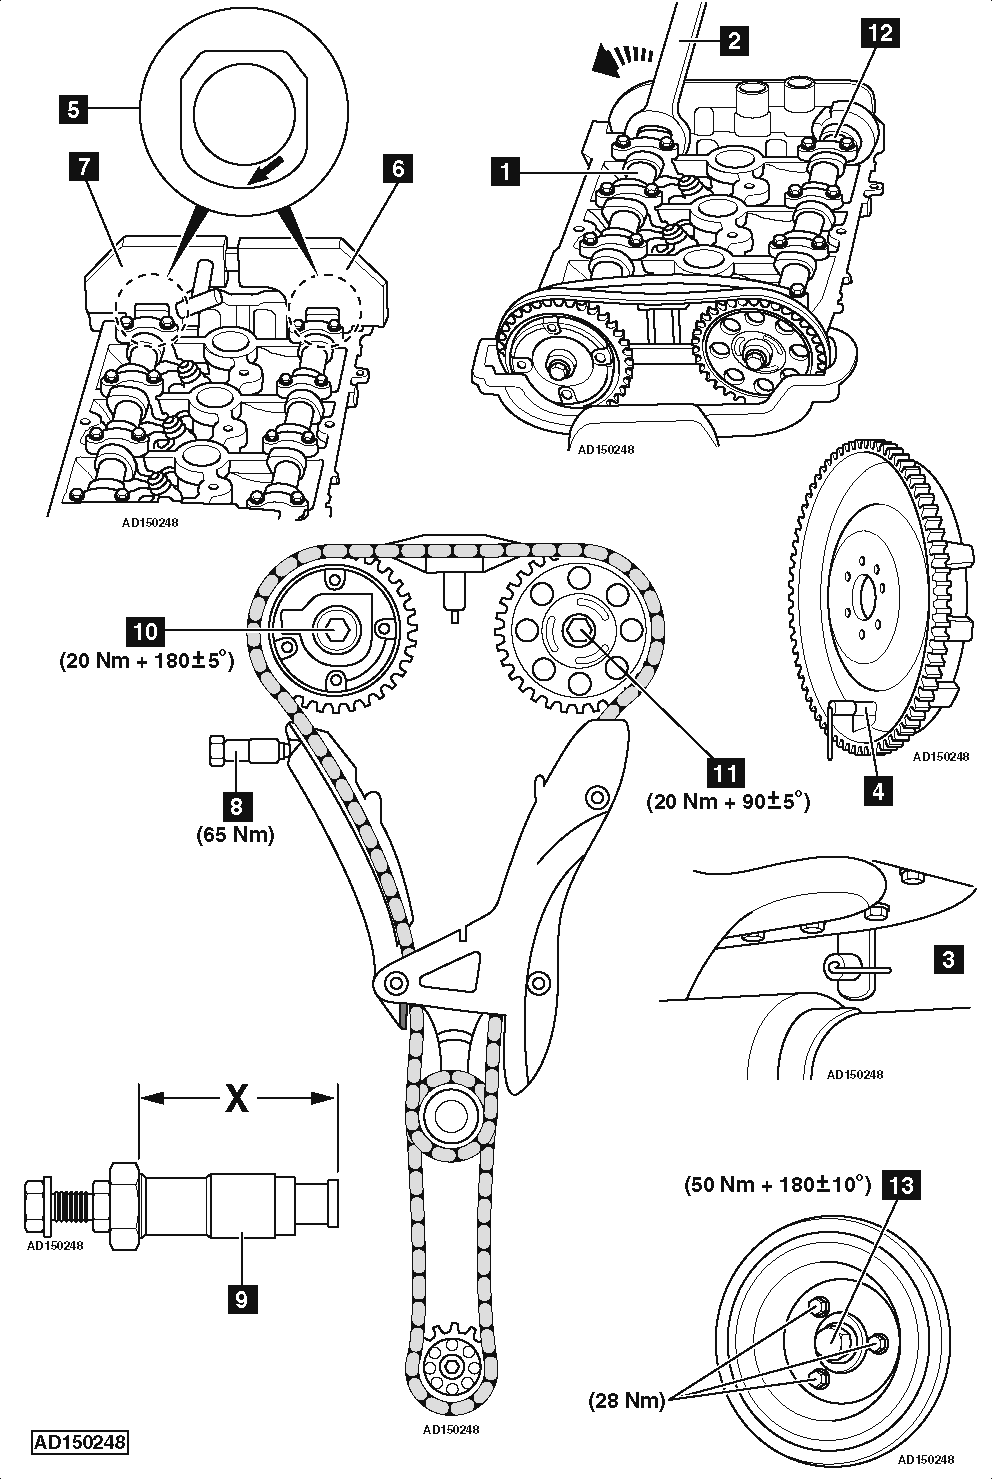 T18776469 Input speed sensor located 2006 chevy likewise C5 O2 Sensor Location furthermore 2006 Pontiac Torrent Engine Diagram likewise 2003 Chevy Tracker Engine Diagram in addition Sensor Crankshaft Camshaft 1 2 Palio. on chevy crankshaft position sensor location